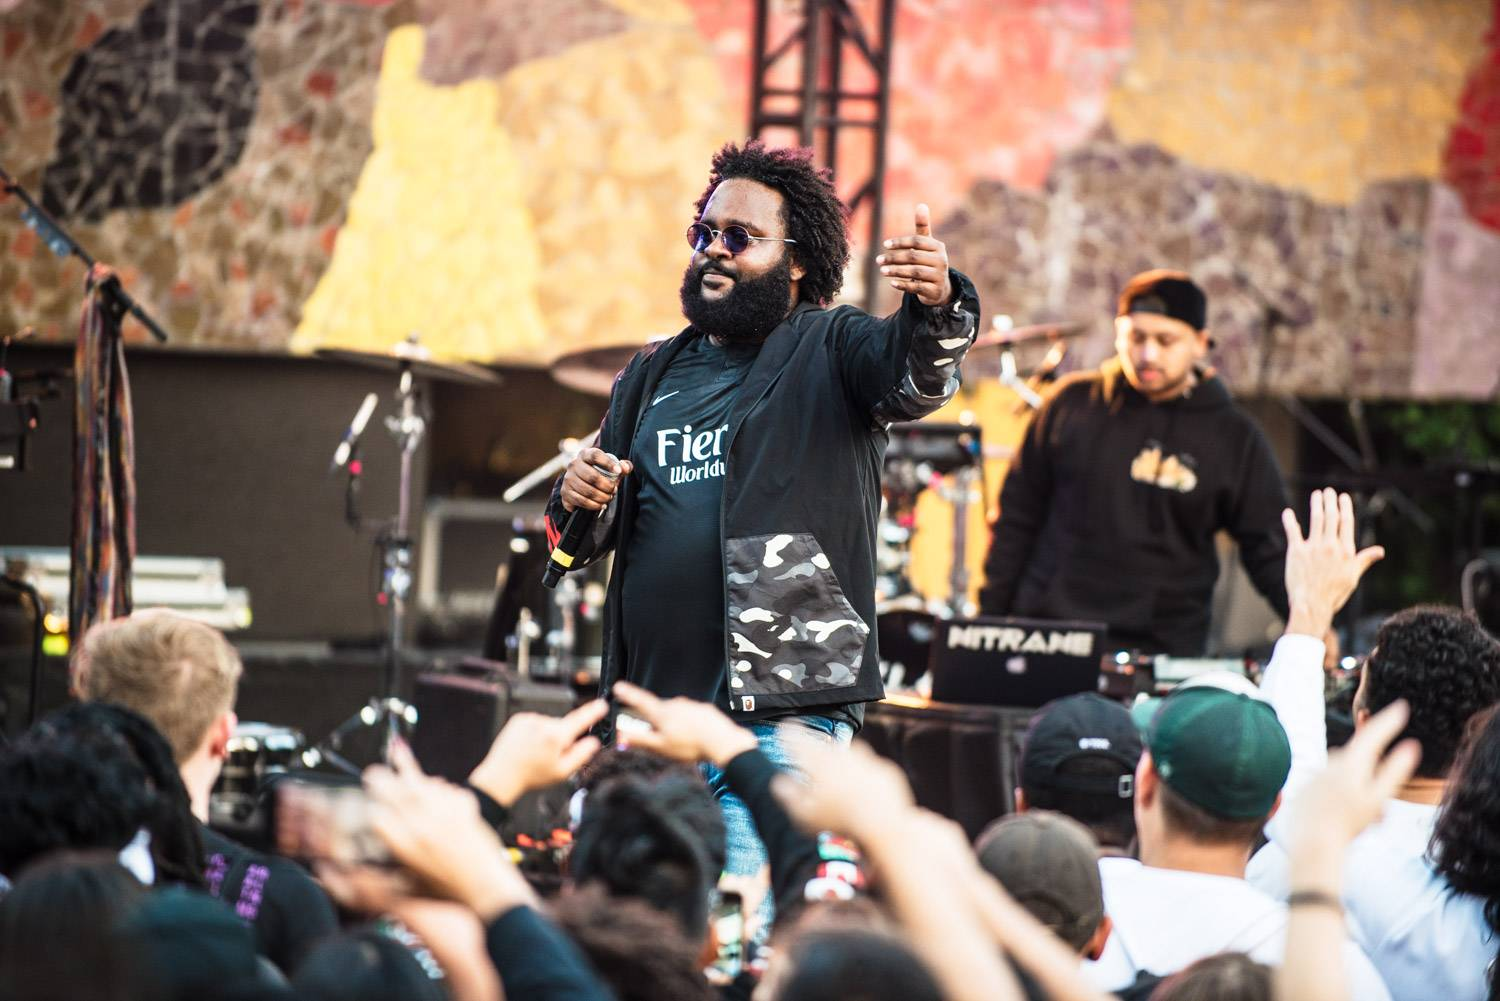 Bas at the Bumbershoot Music Festival 2018 - Day 2. Sept 1 2018. Pavel Boiko photo.